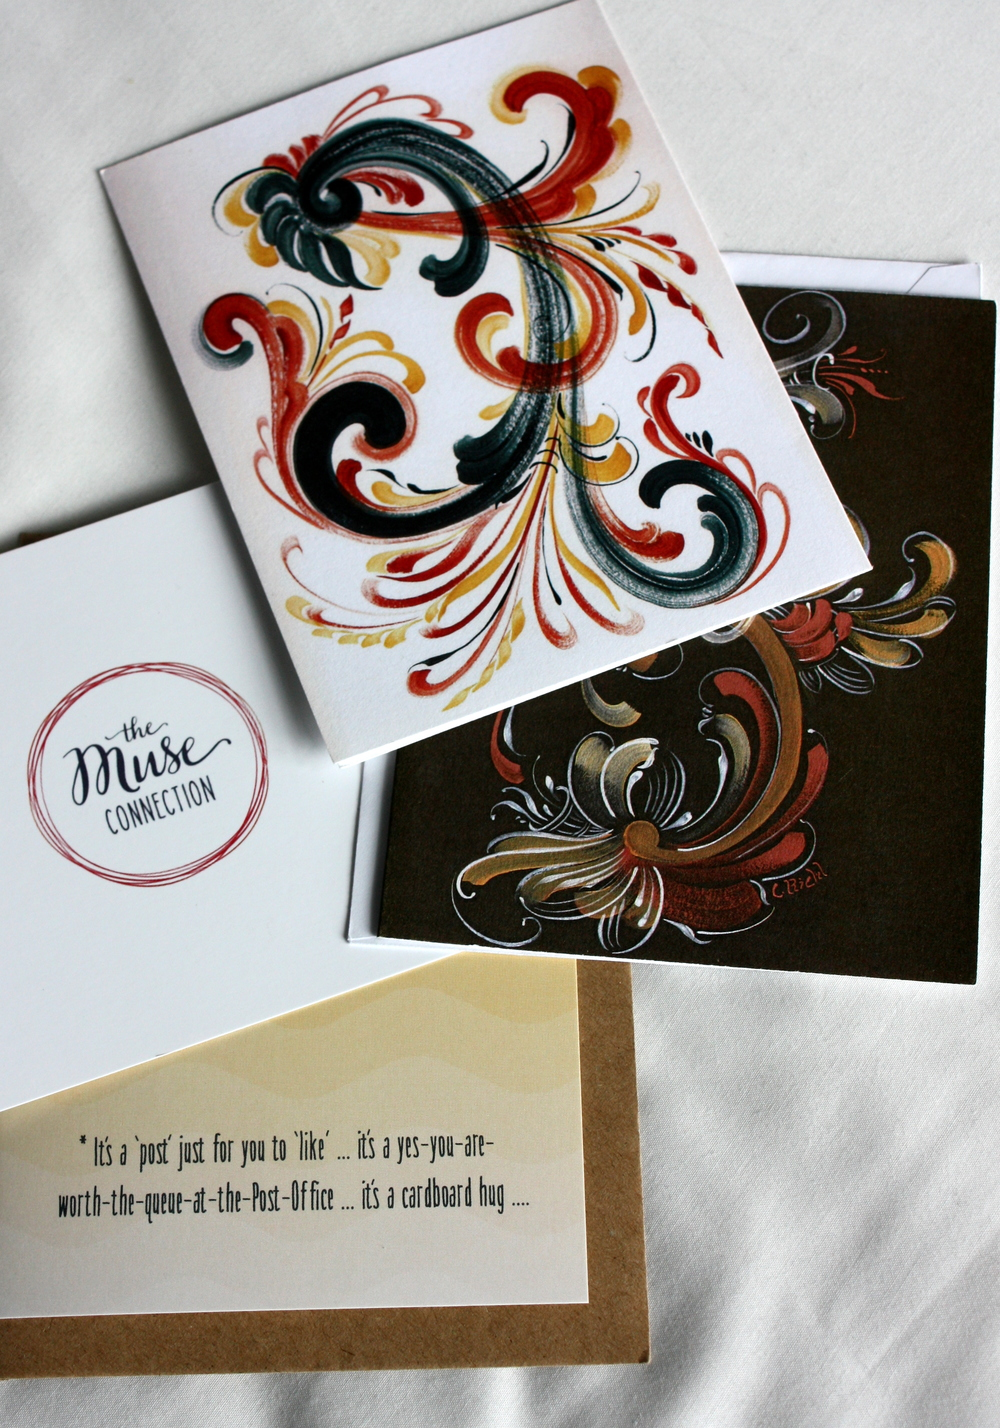 For the love of snail mail #aninspired2015